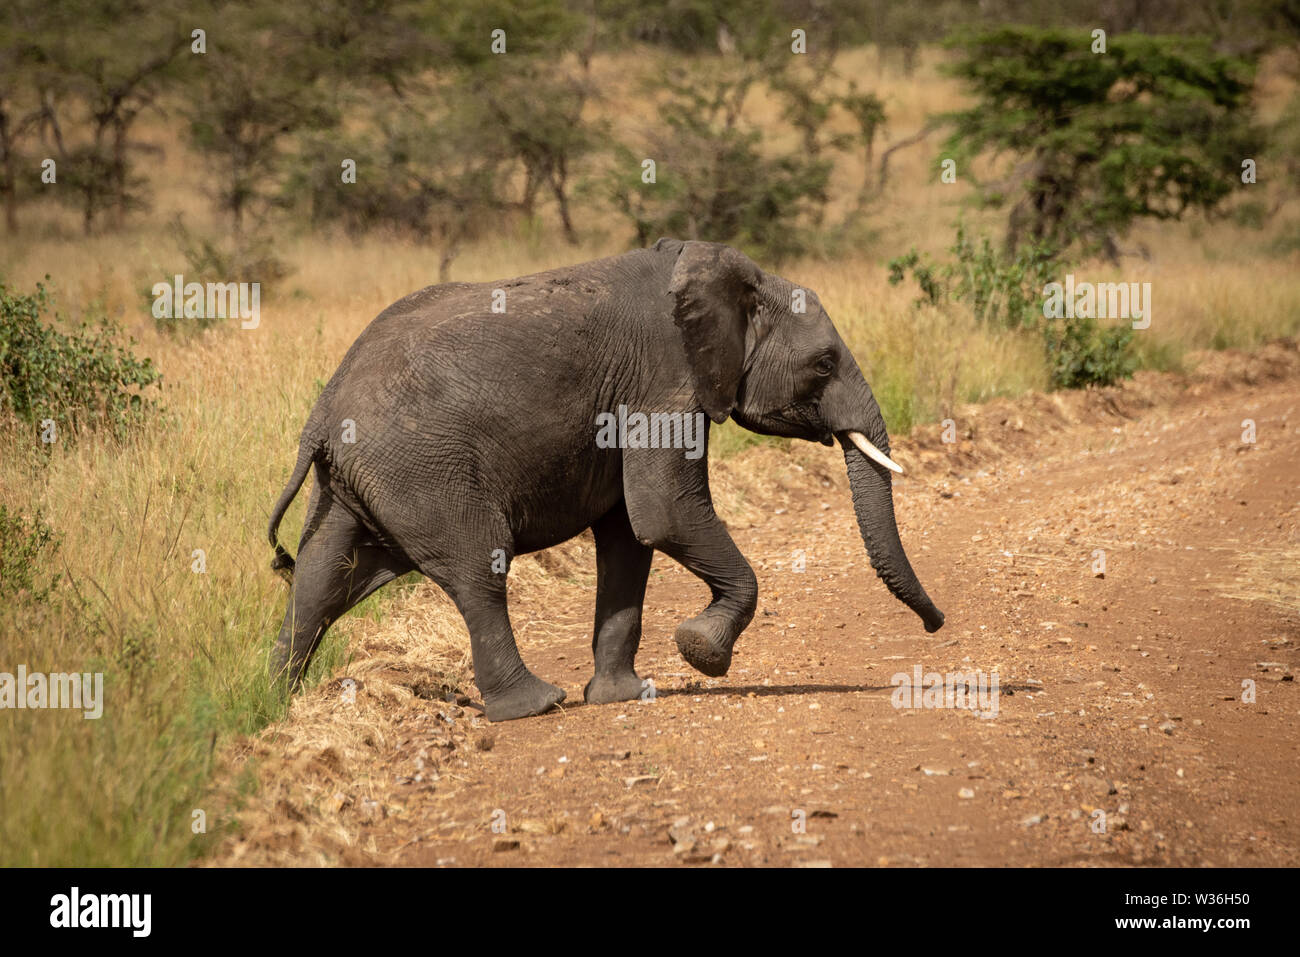 African elephant lifts foot crossing dirt road - Stock Image